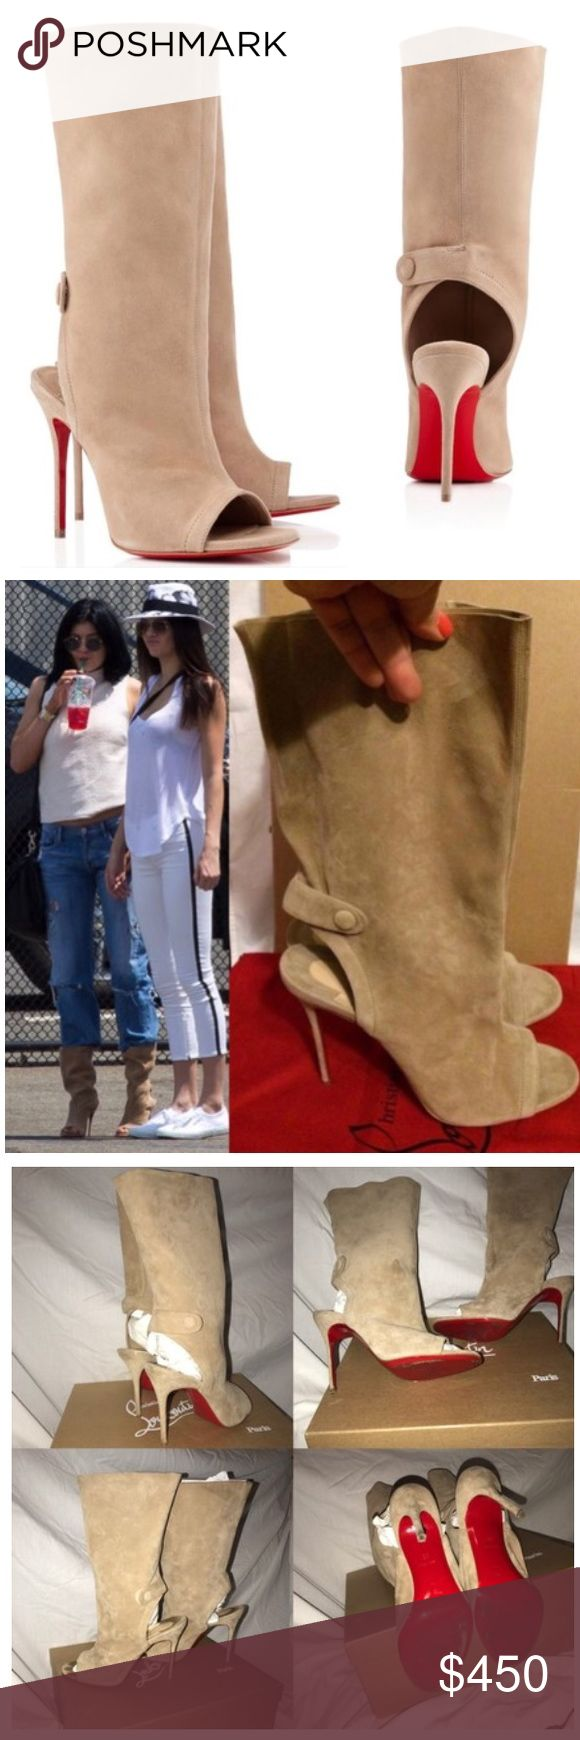 """LOUBOUTIN MISTINGUETRE SUEDE BOOTS SIZE EU 38/7.5 *SEEN ON KYLIE JENNER *Worn 3 times and stored. Box was lost but dust bags come with purchase. Minor wear to soles (ALL OF RED IS ON SOLES; clear sole protector on soles can be removed) ***minor flaw -toe imprints from walking; not noticeable when shoes are worn. Suede can be cleaned.*snap-tab at back.Mid-Calf Boots *SOLD OUT *100mm heel *SIZE: 38 EU/ US 7.5 (insole measures 9.5"""", Heel: 4 1/8"""")*GUARANTEED 100% AUTHENTIC! *Retail: $1,200.00**2…"""